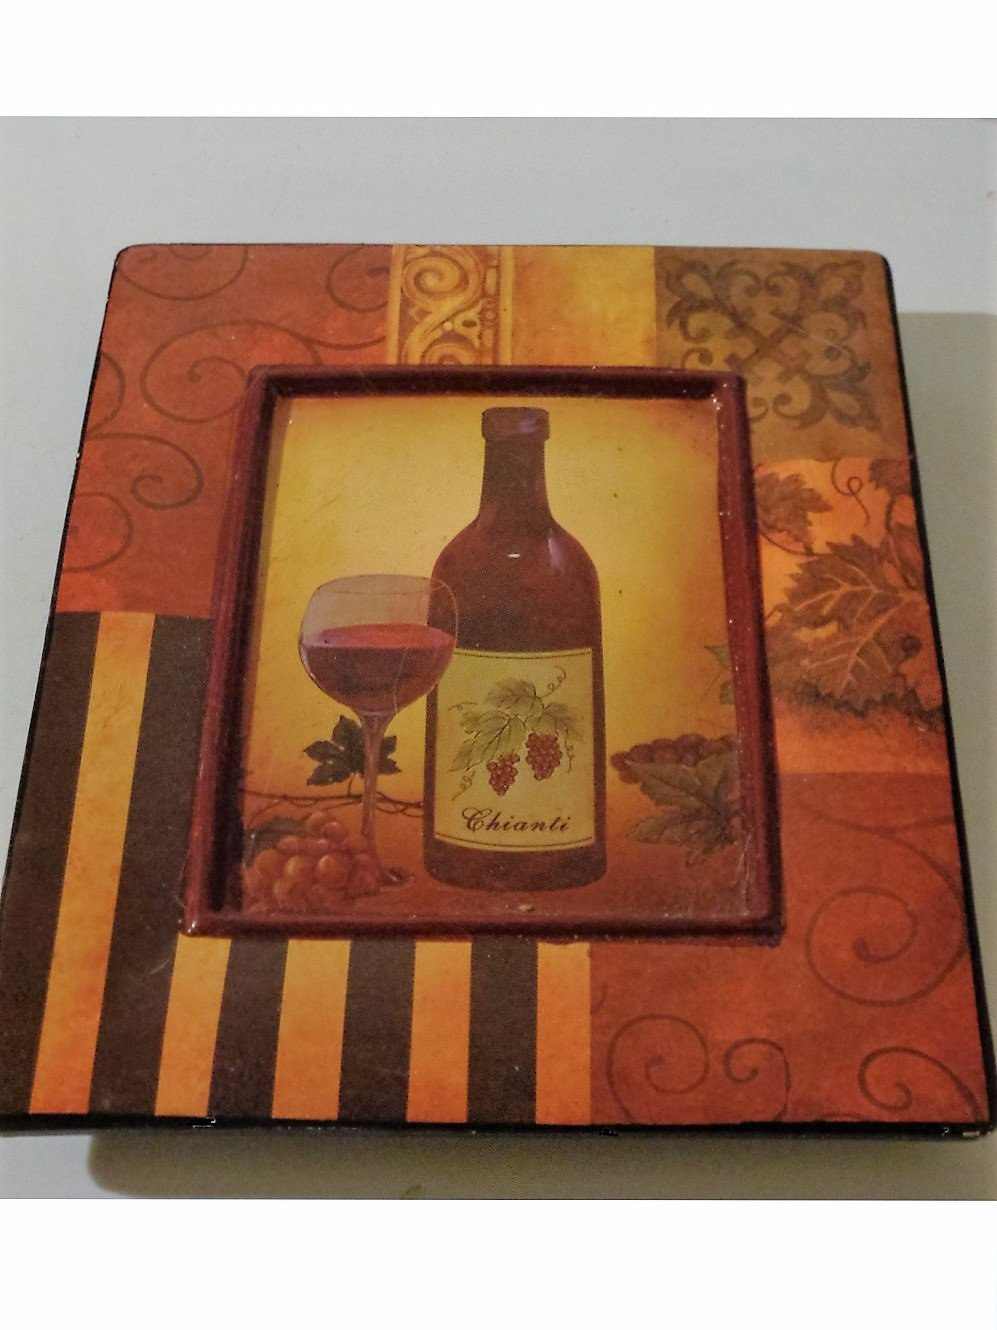 Tuscan Wine Bottle Glass of Chianti  Grapes Ceramic Wall Plaque